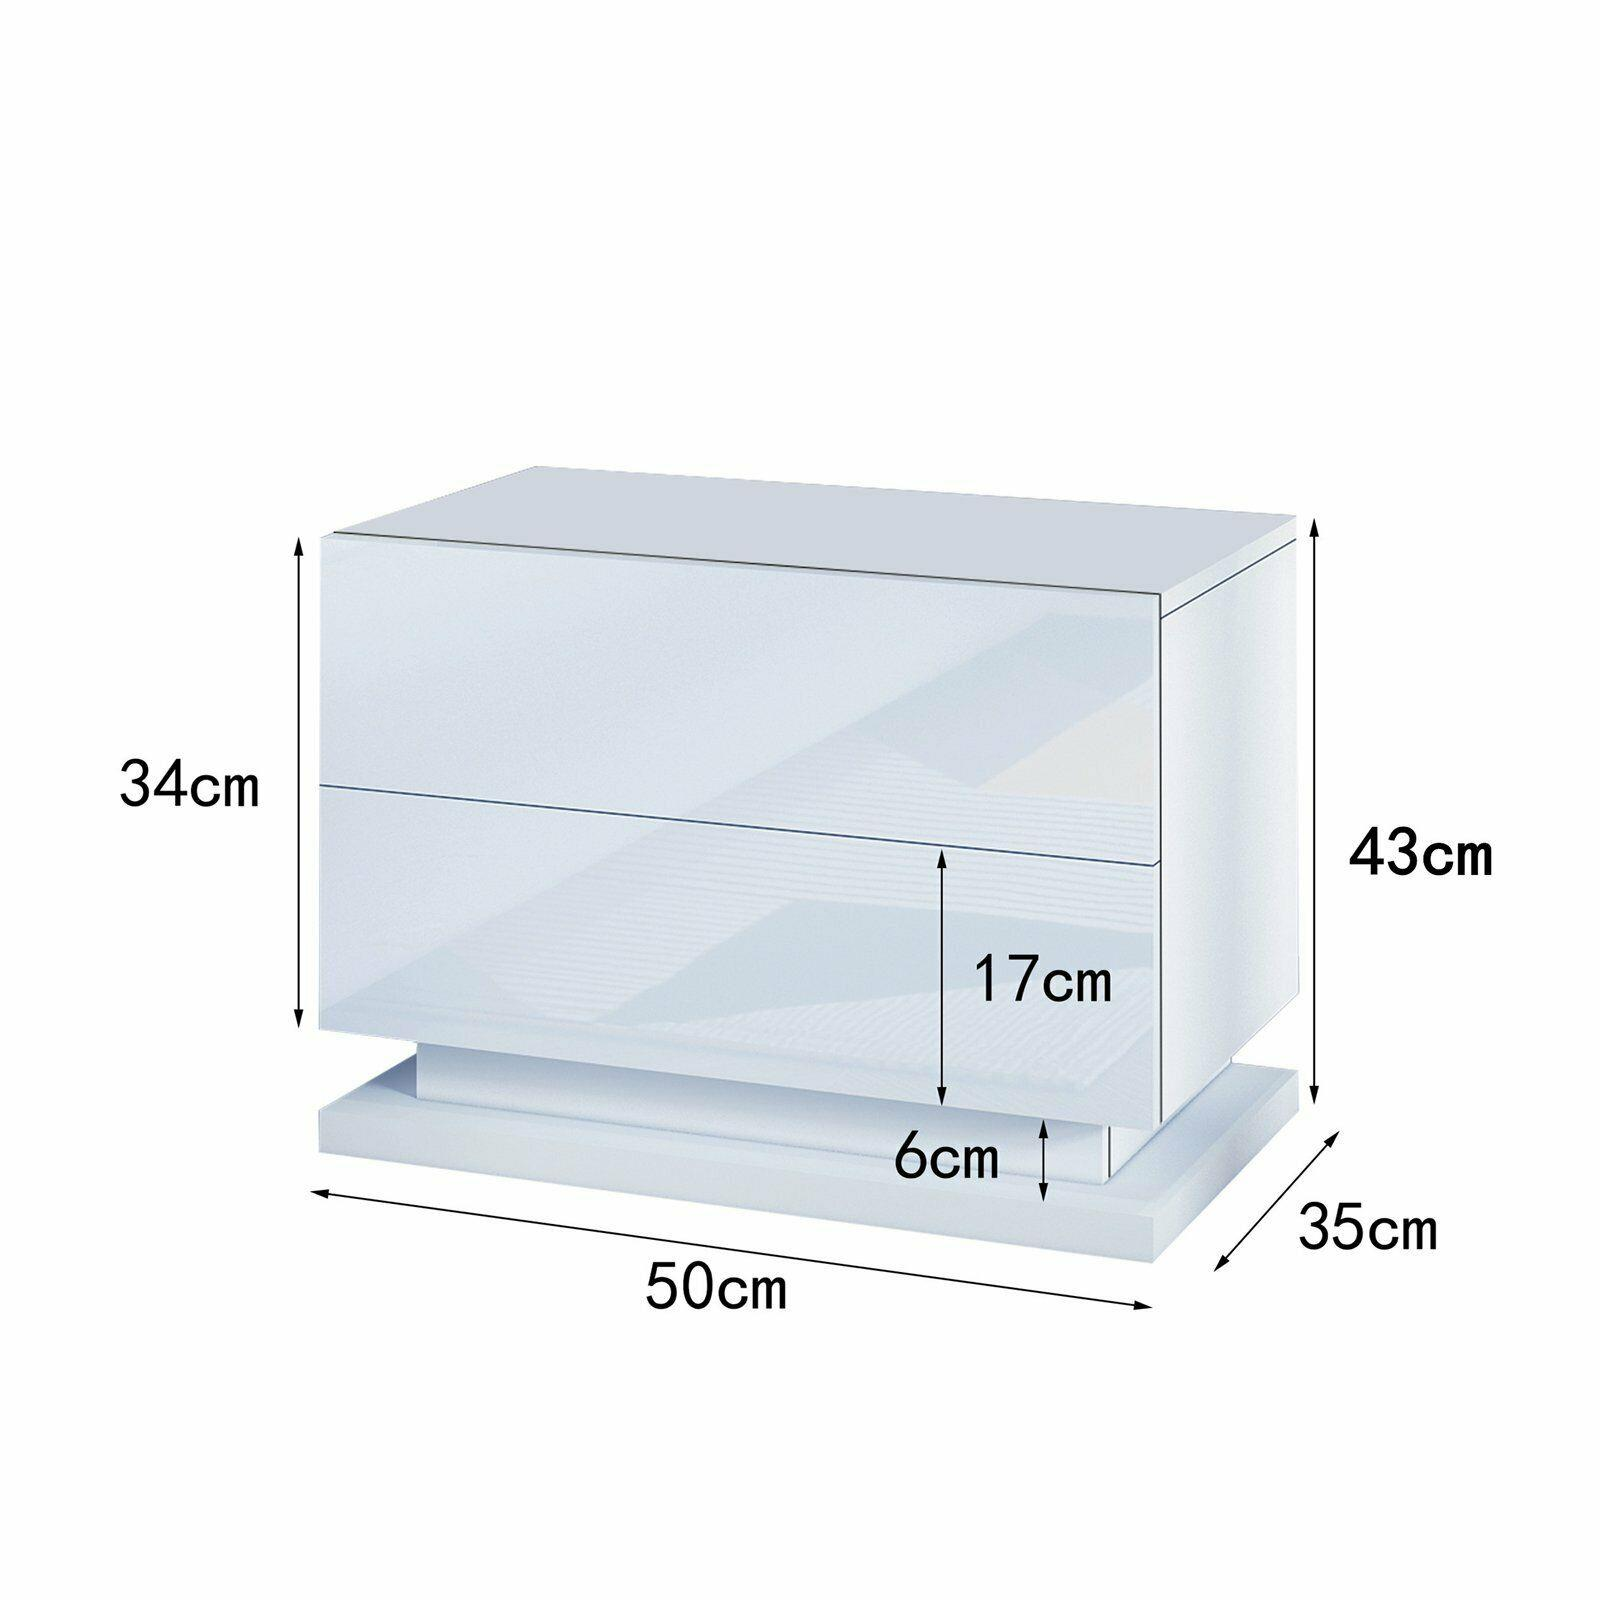 thumbnail 6 - Modern-LED-Bedside-Table-Cabinet-Nightstand-w-2-Drawer-High-Gloss-RGB-Light